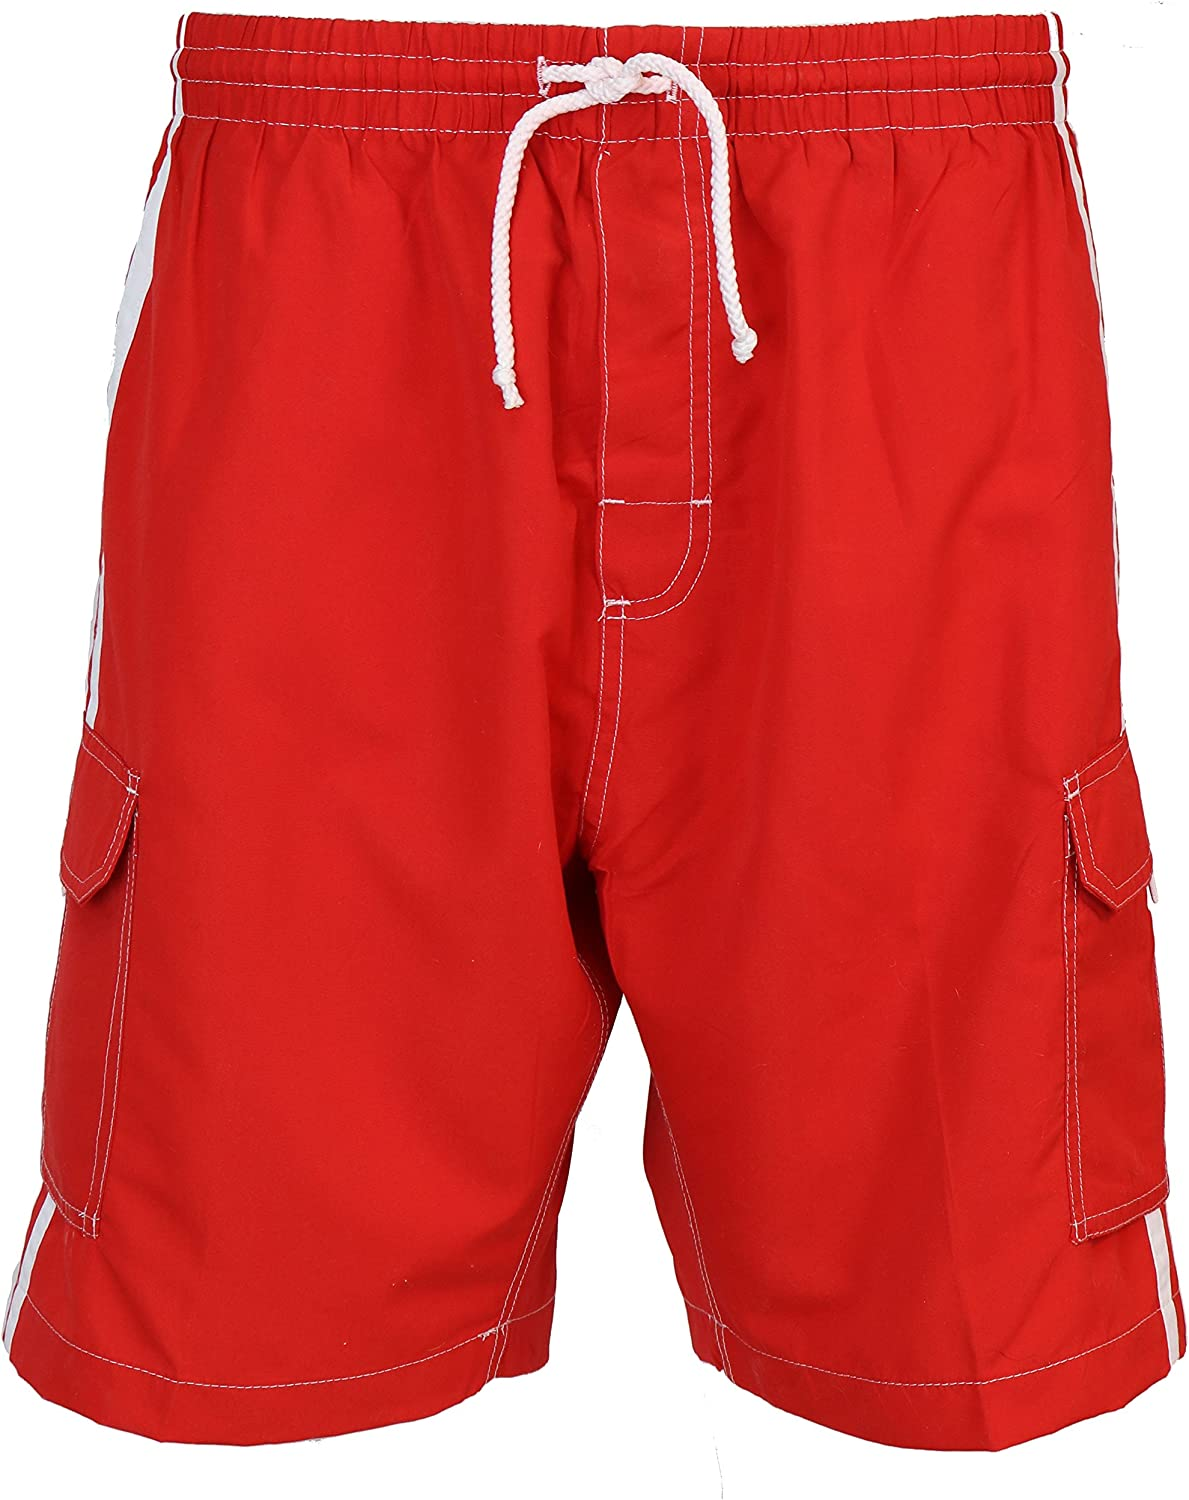 SURF AVE Men's Classic Five Pockets No Swim Grommets Max 79% OFF Trun Free shipping on posting reviews Long